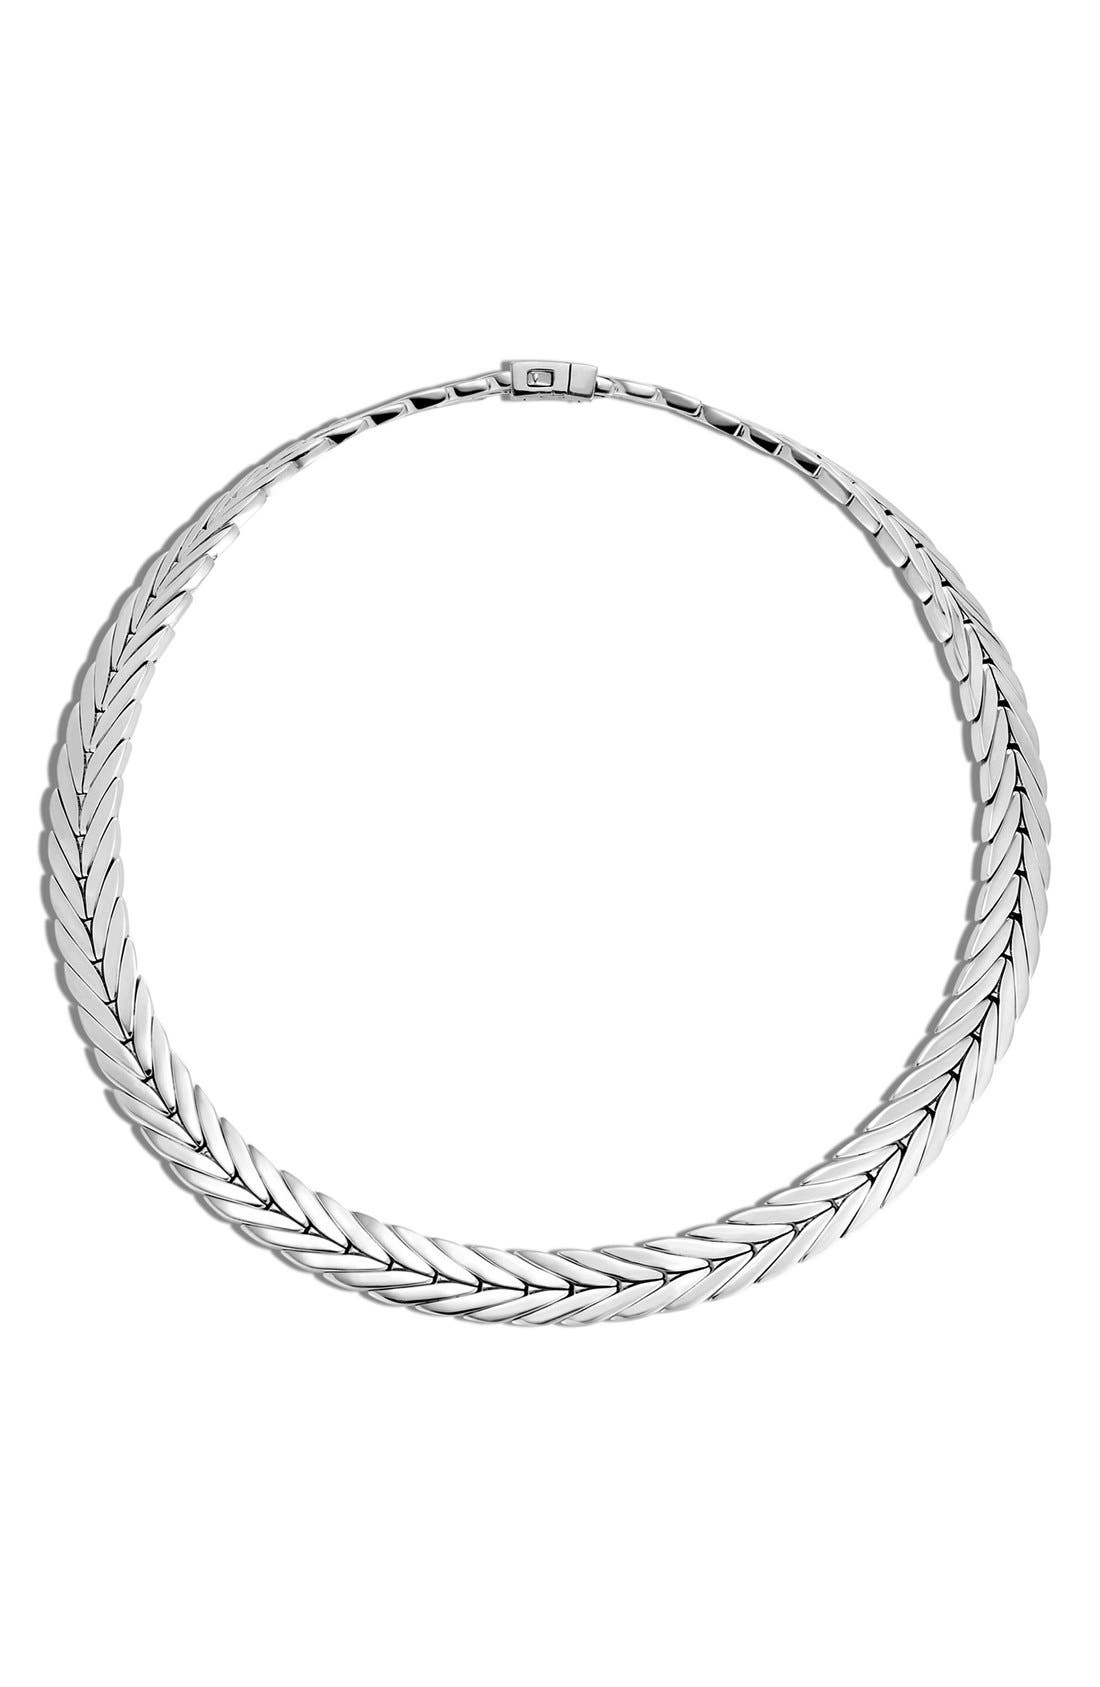 John Hardy 'Classic Chain' Chain Collar Necklace